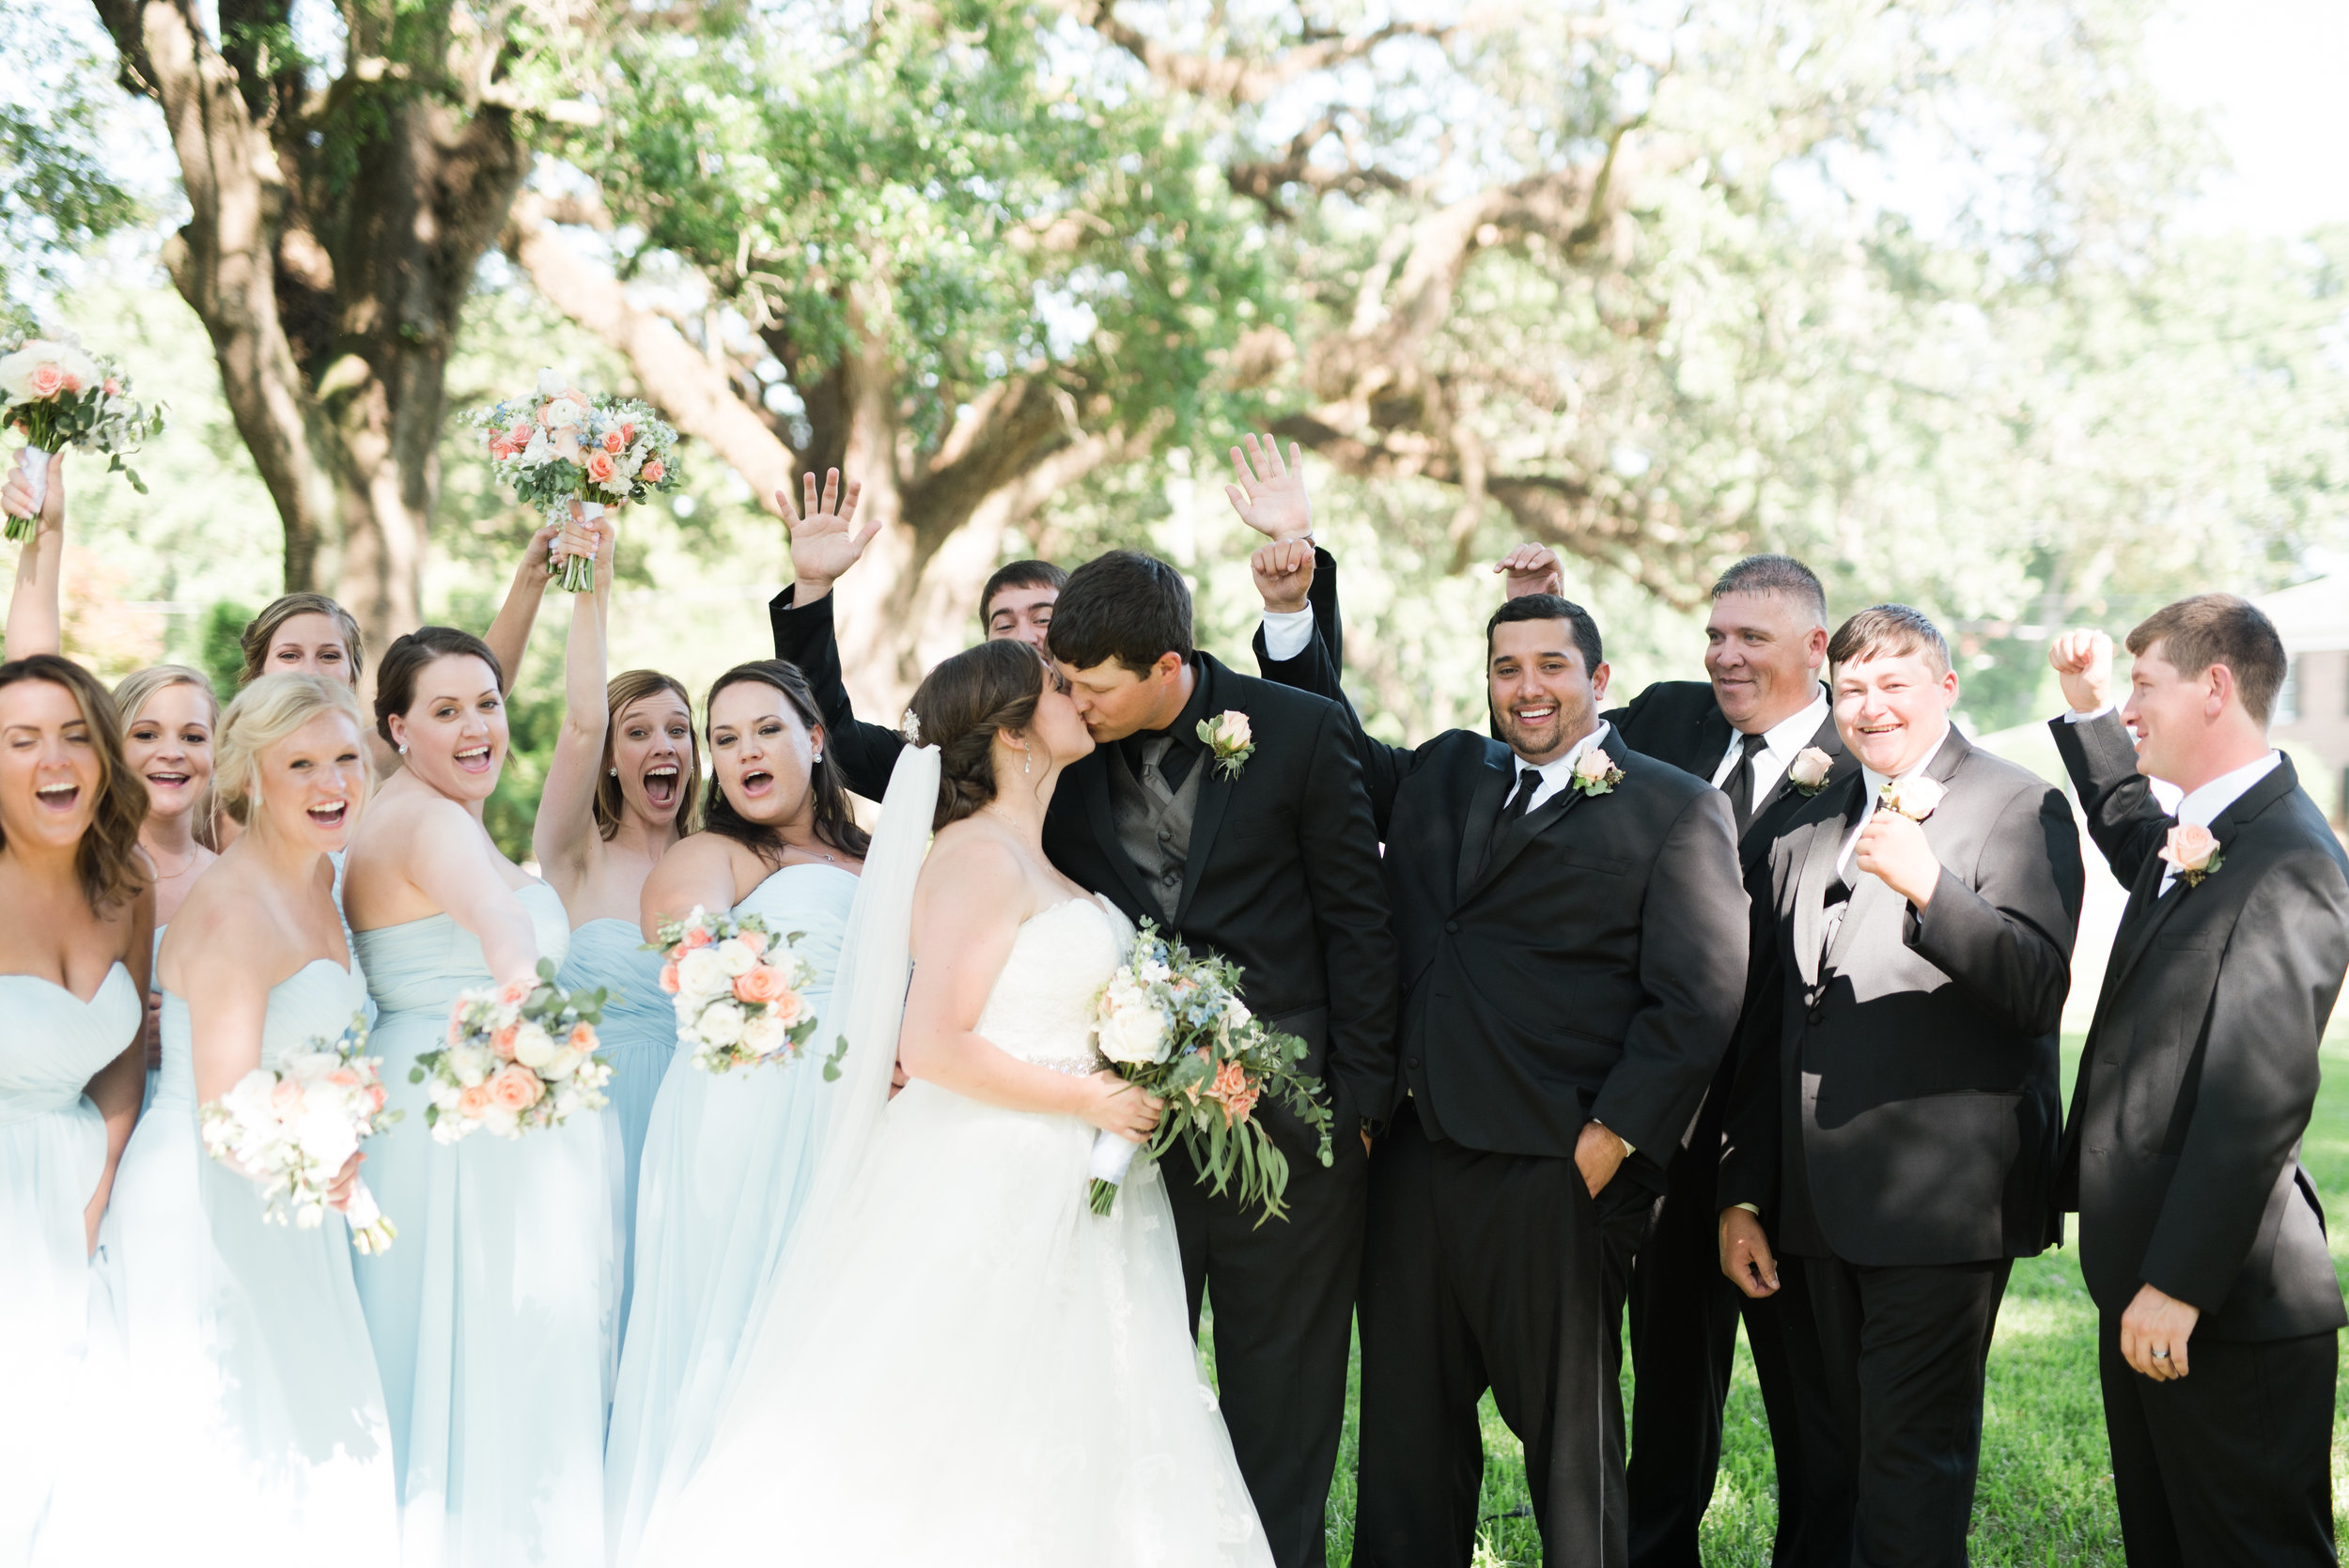 Alyssa and Heath Wedding Bridal Party at the Bragg Mitchell Mansion in Mobile, Alabama on May  25th, 2019